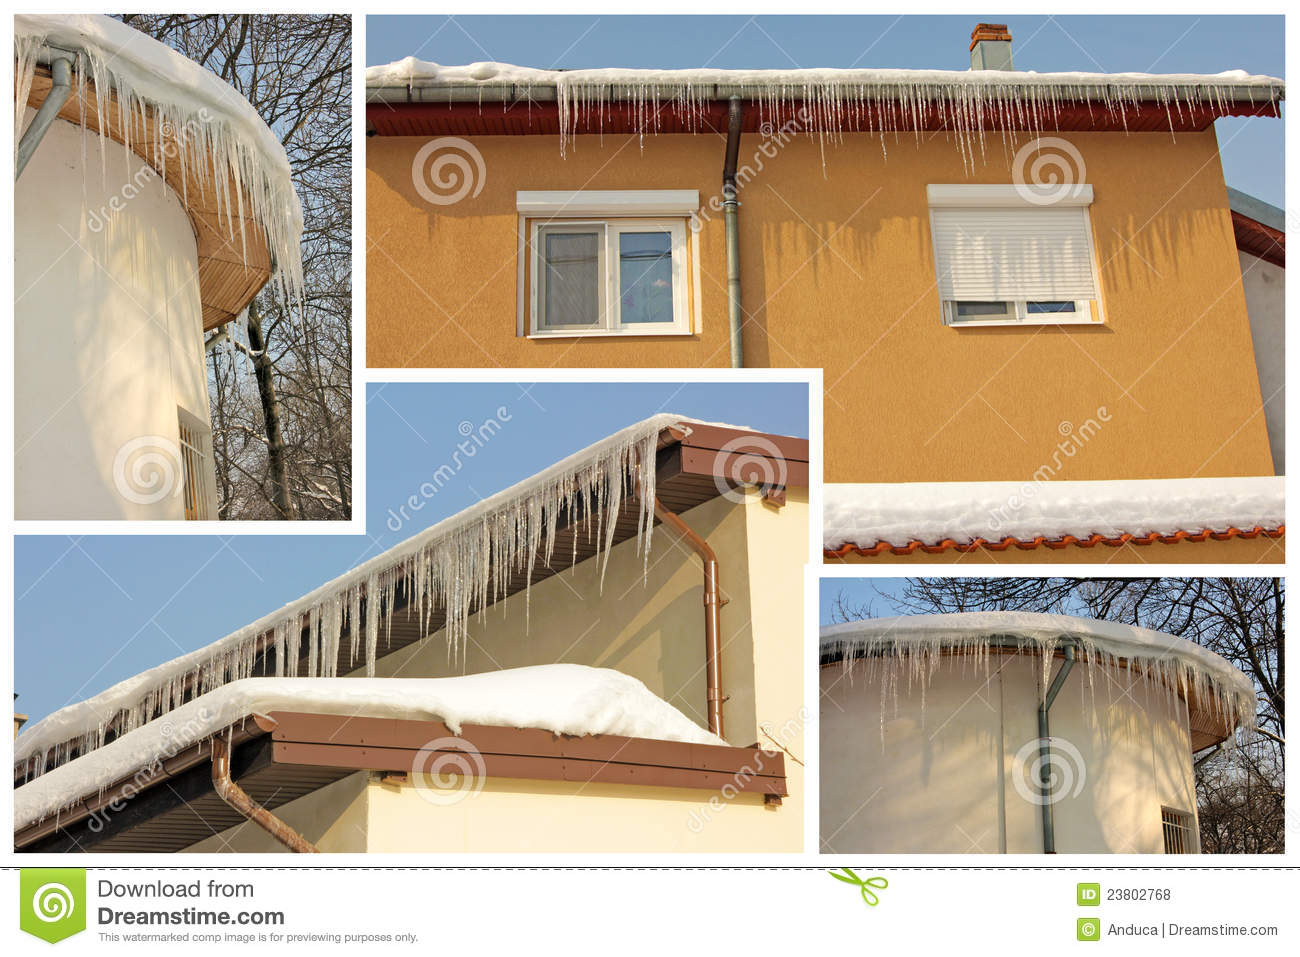 Roof icicles collage